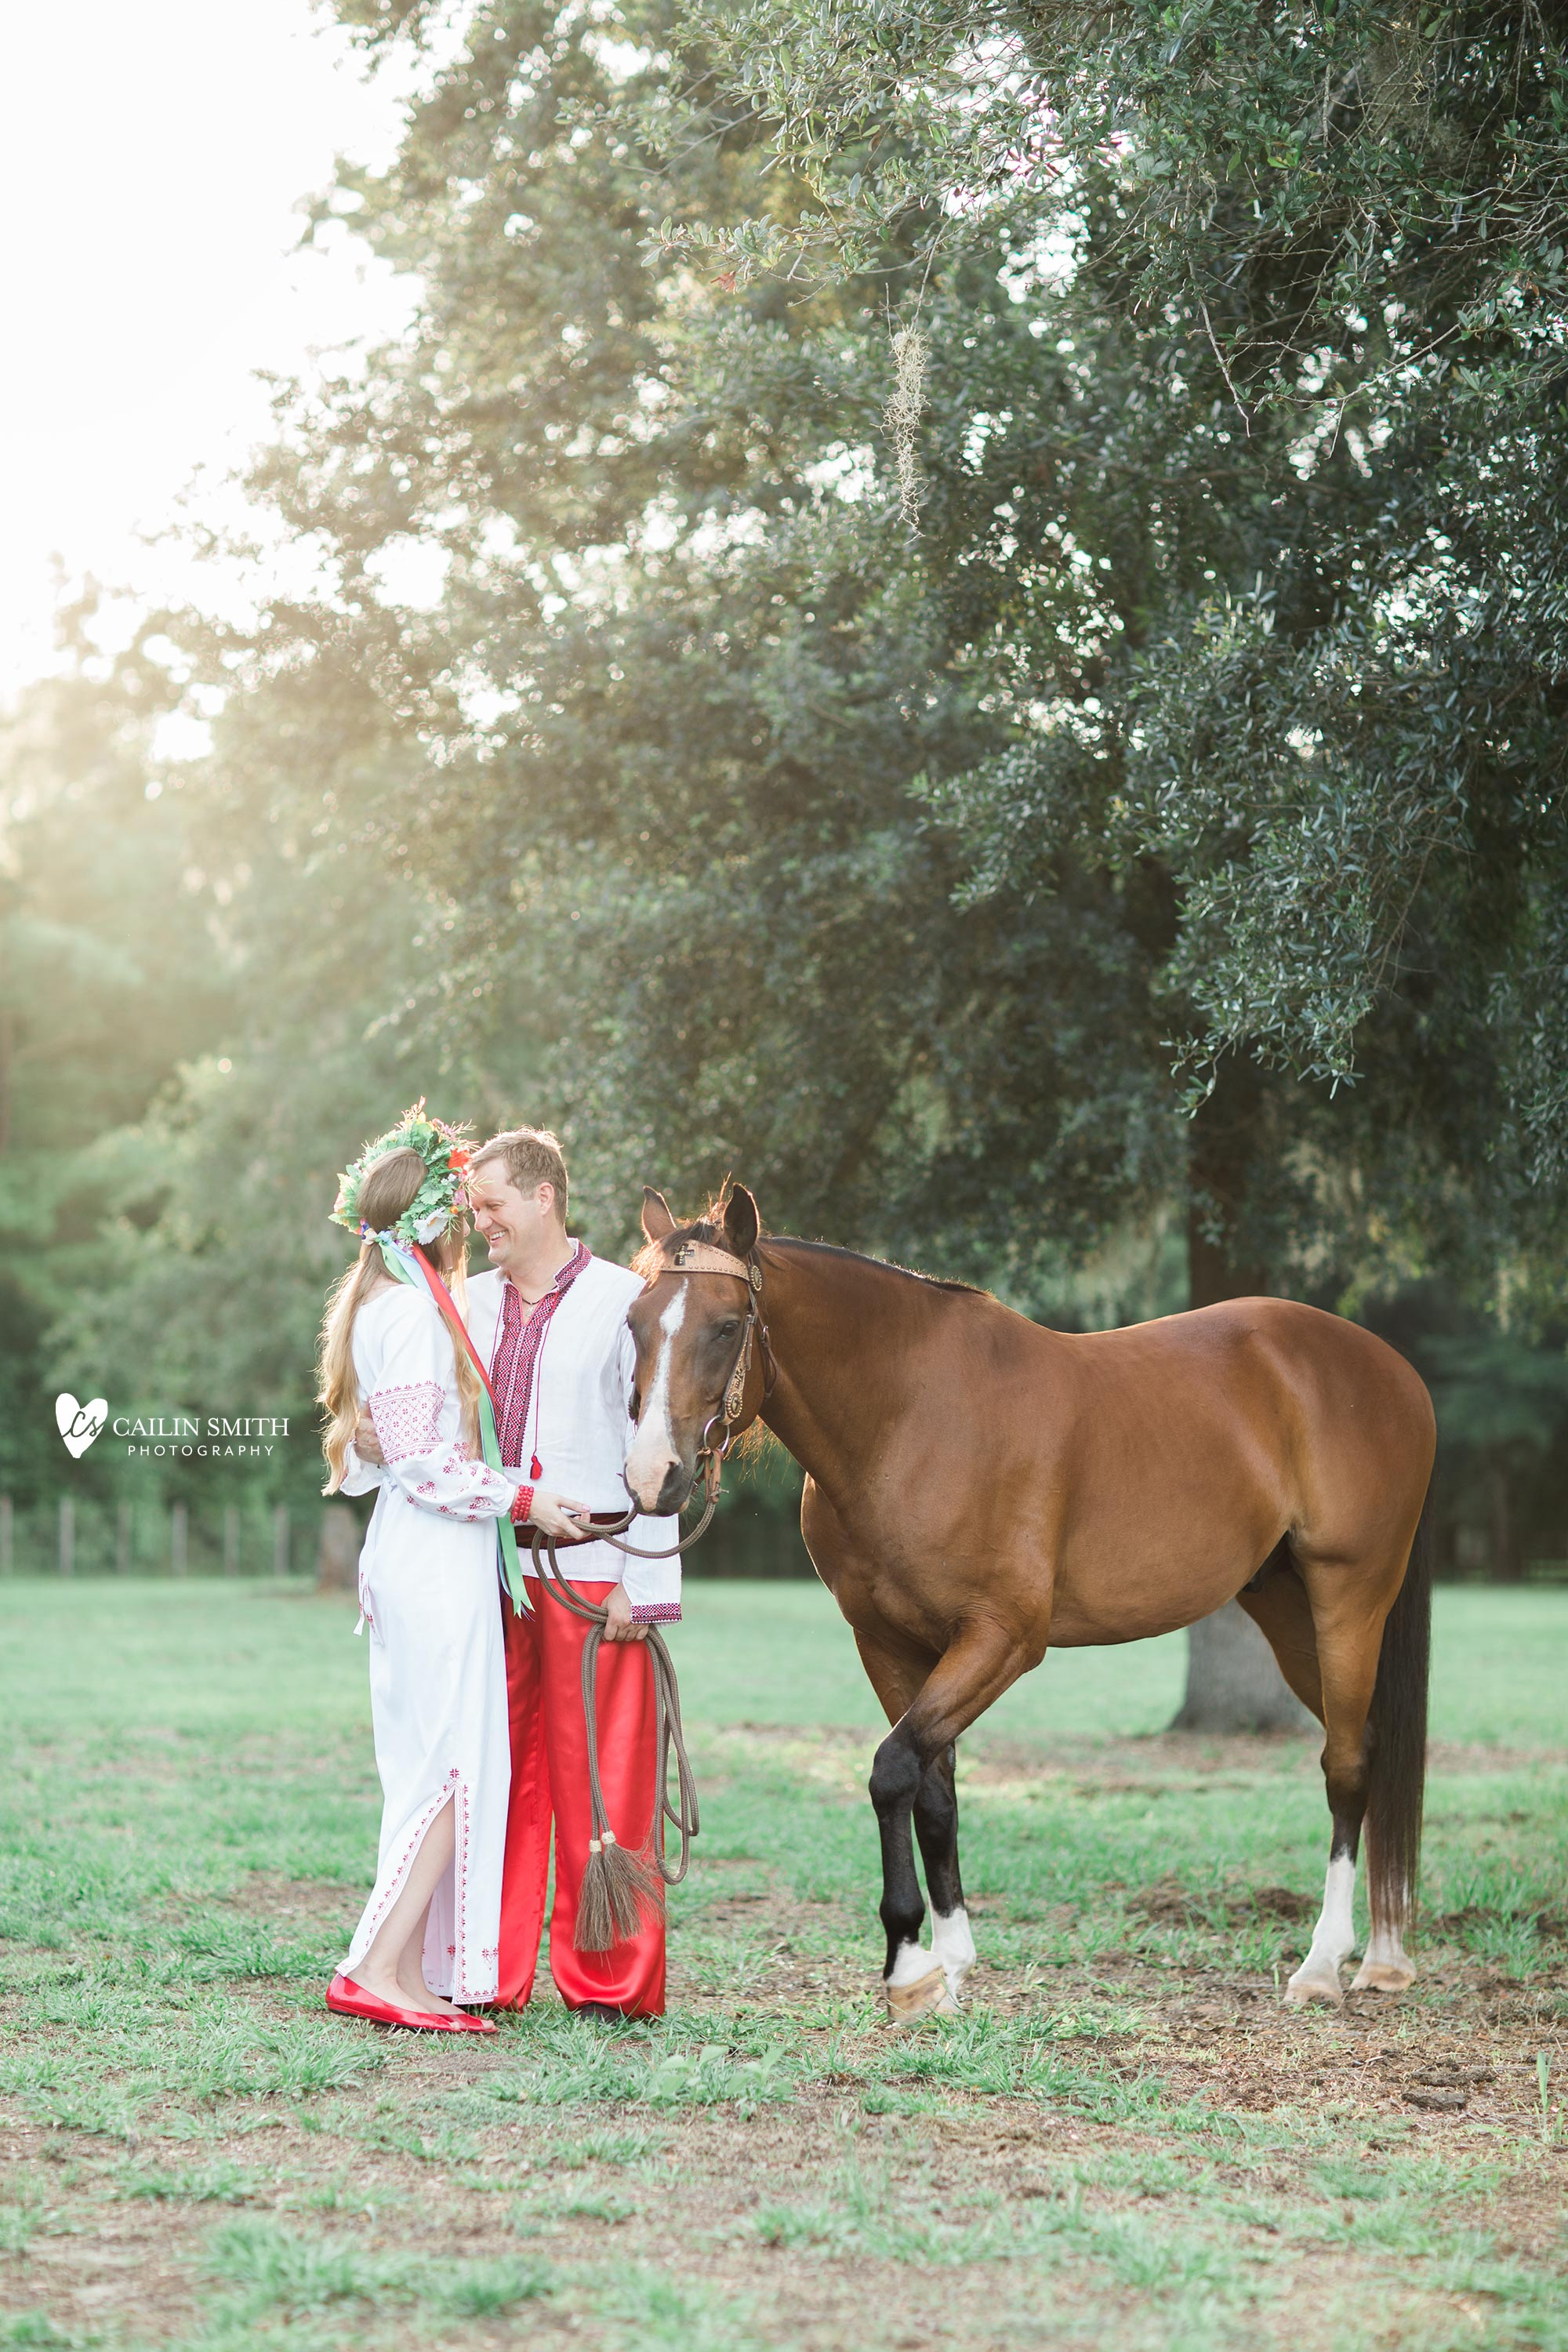 Tetiana_James_Horse_Engagement_Photography_0010.jpg